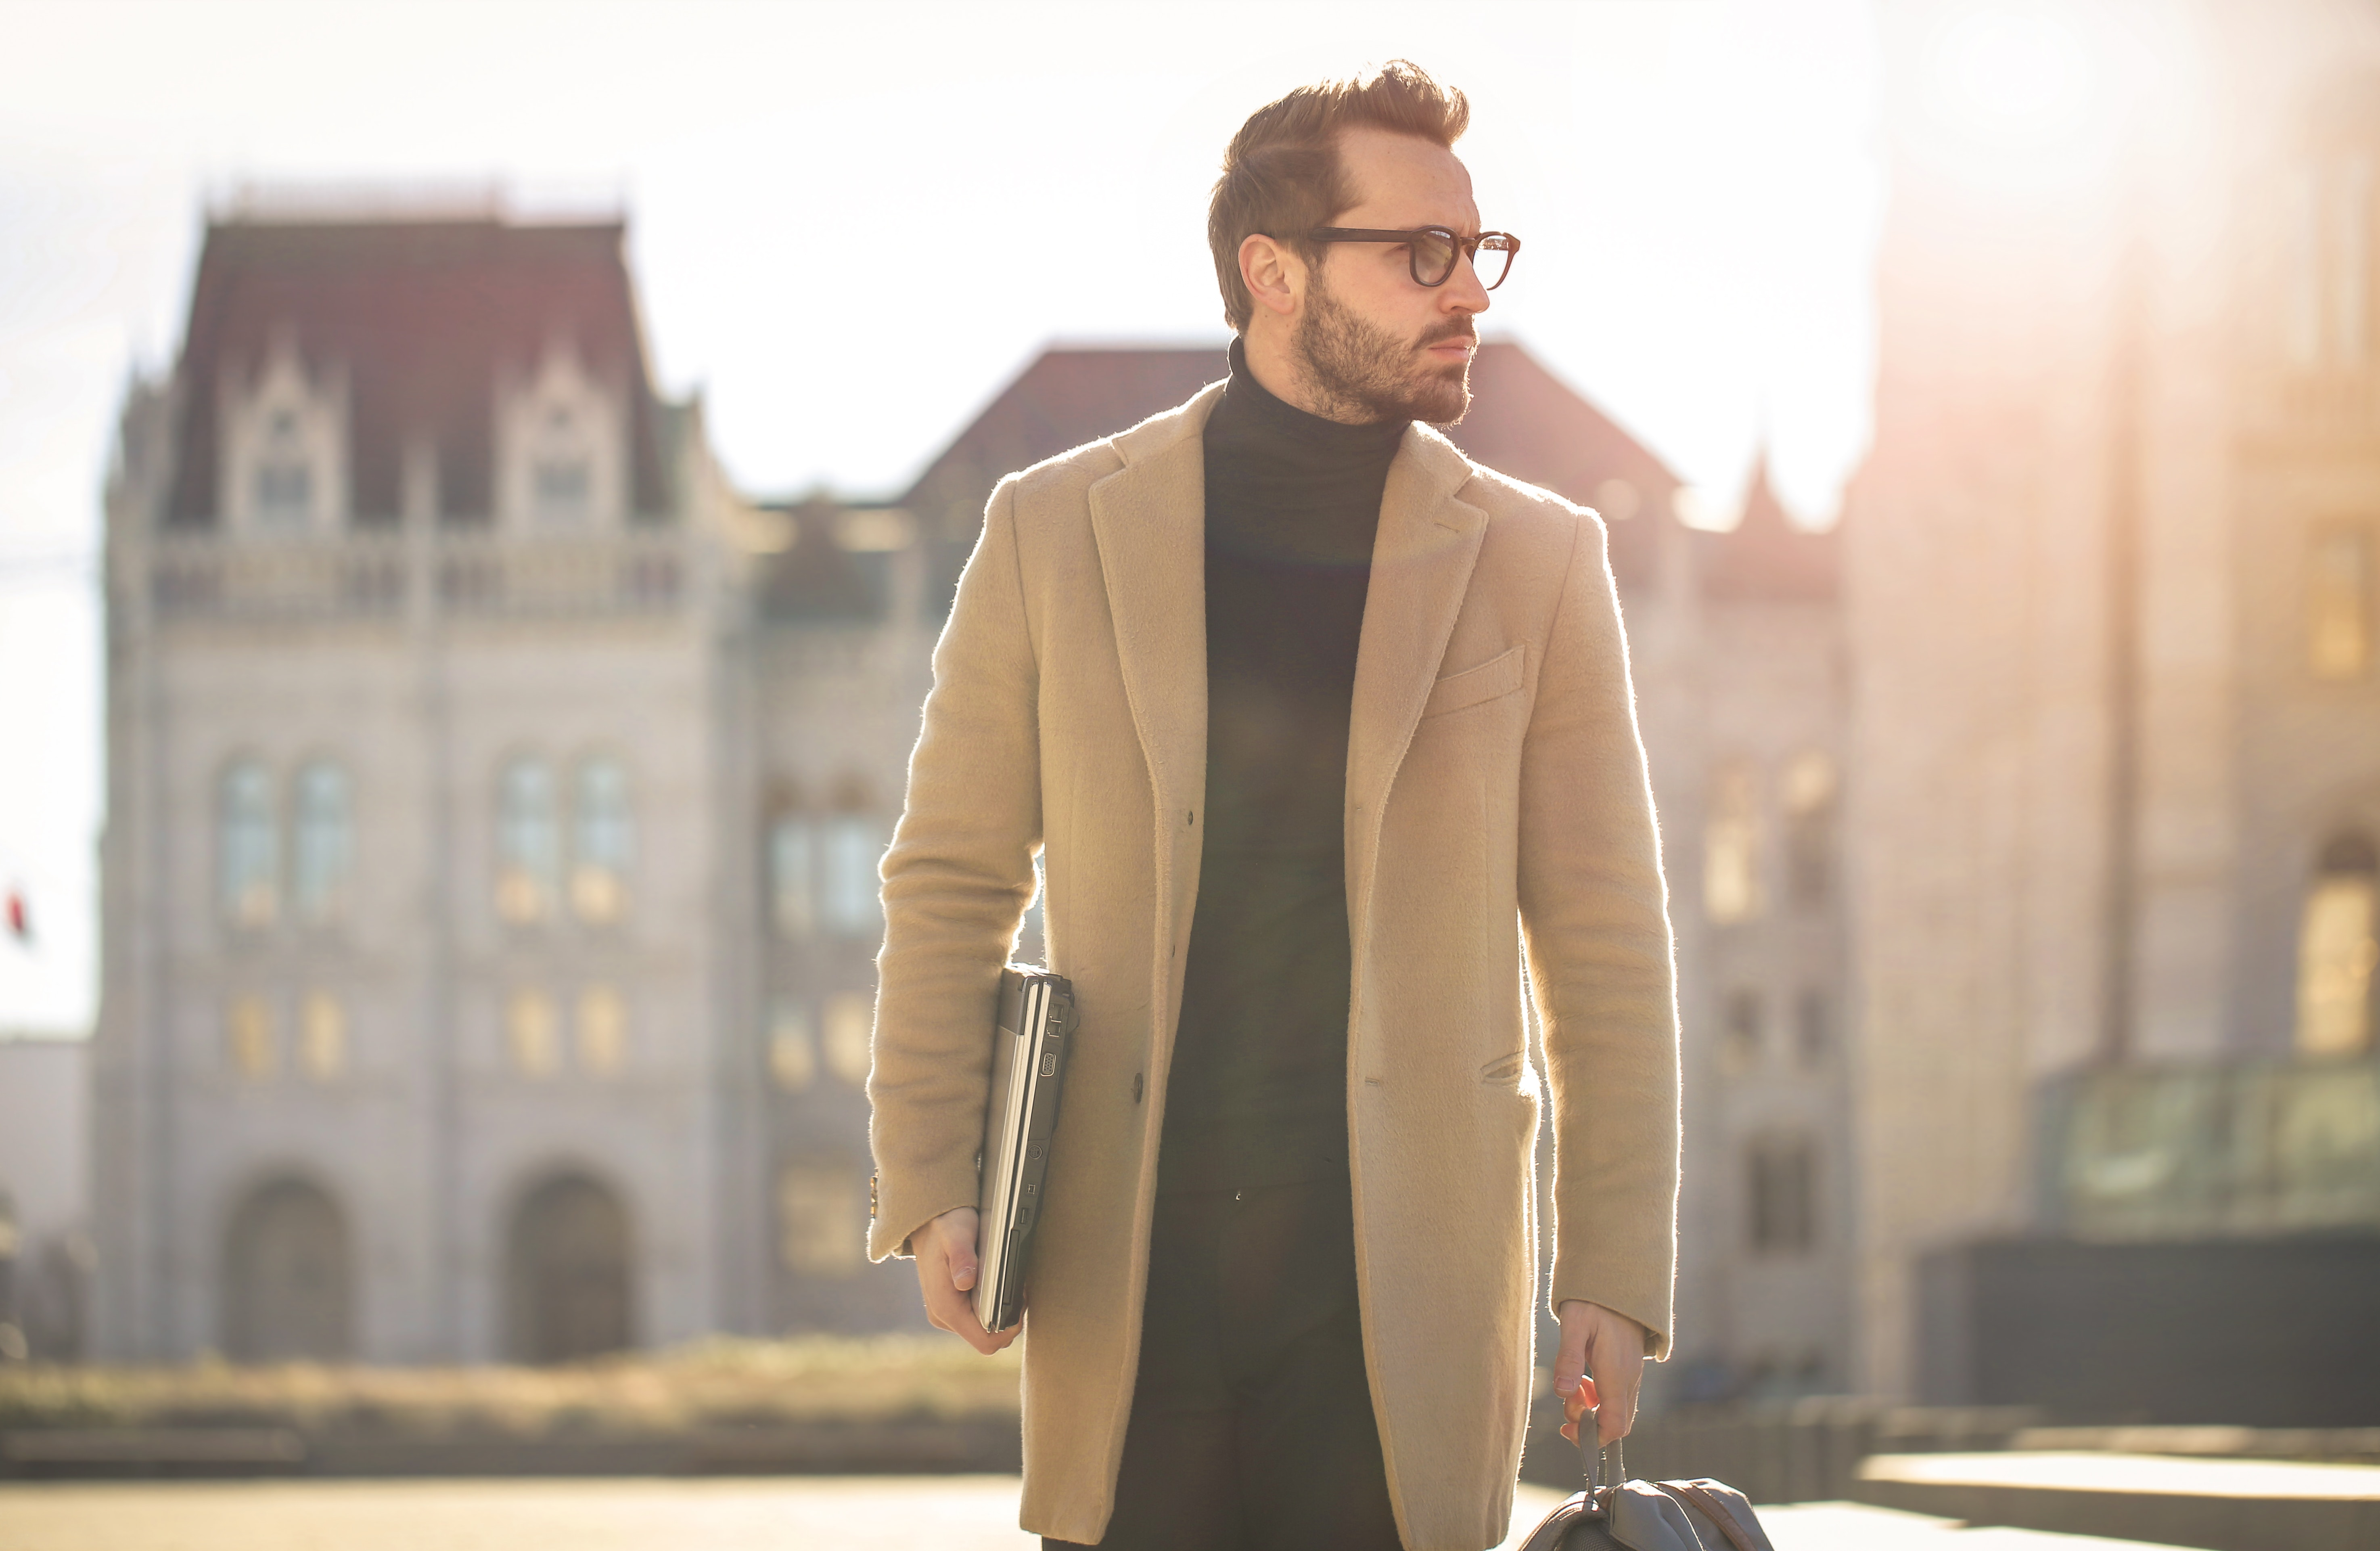 Man wearing brown coat photo